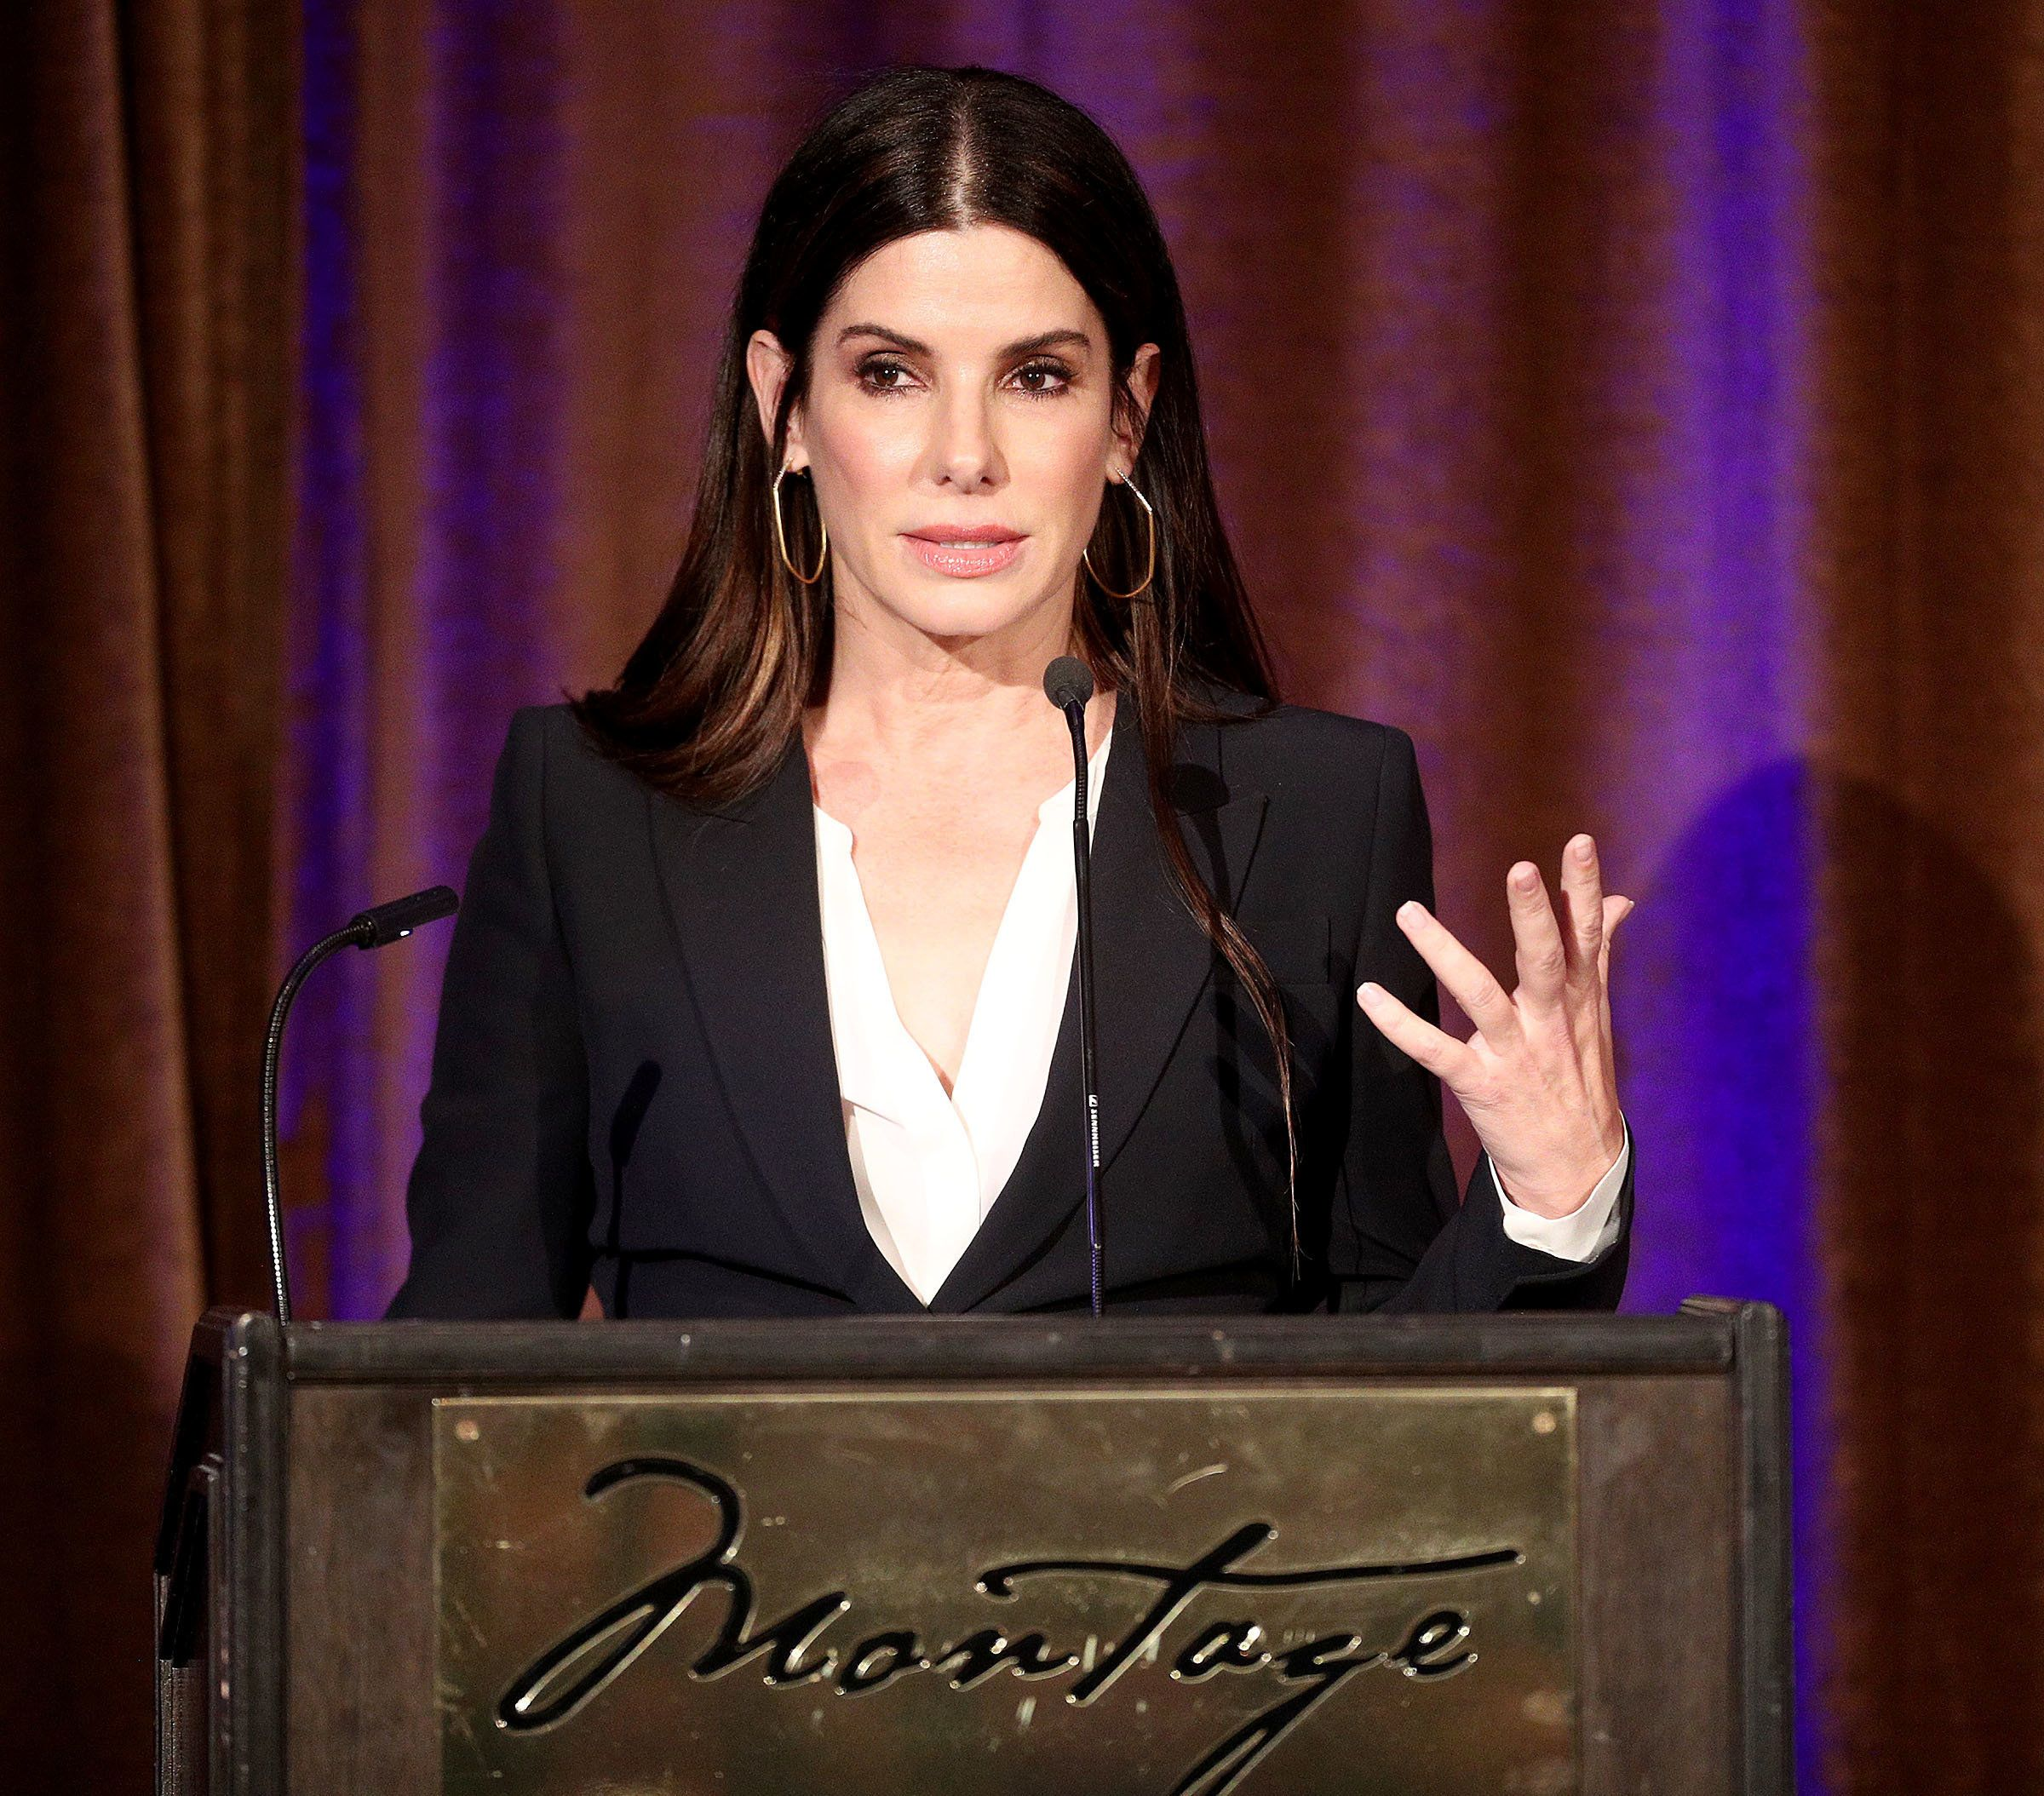 BEVERLY HILLS, CA - MAY 03: Actress Sandra Bullock speaks during the Beverly Hills Bar Association's 2018 Entertainment Lawyer of the Year Dinner at the Montage Beverly Hills on May 3, 2018 in Beverly Hills, California.  (Photo by Frederick M. Brown/Getty Images)